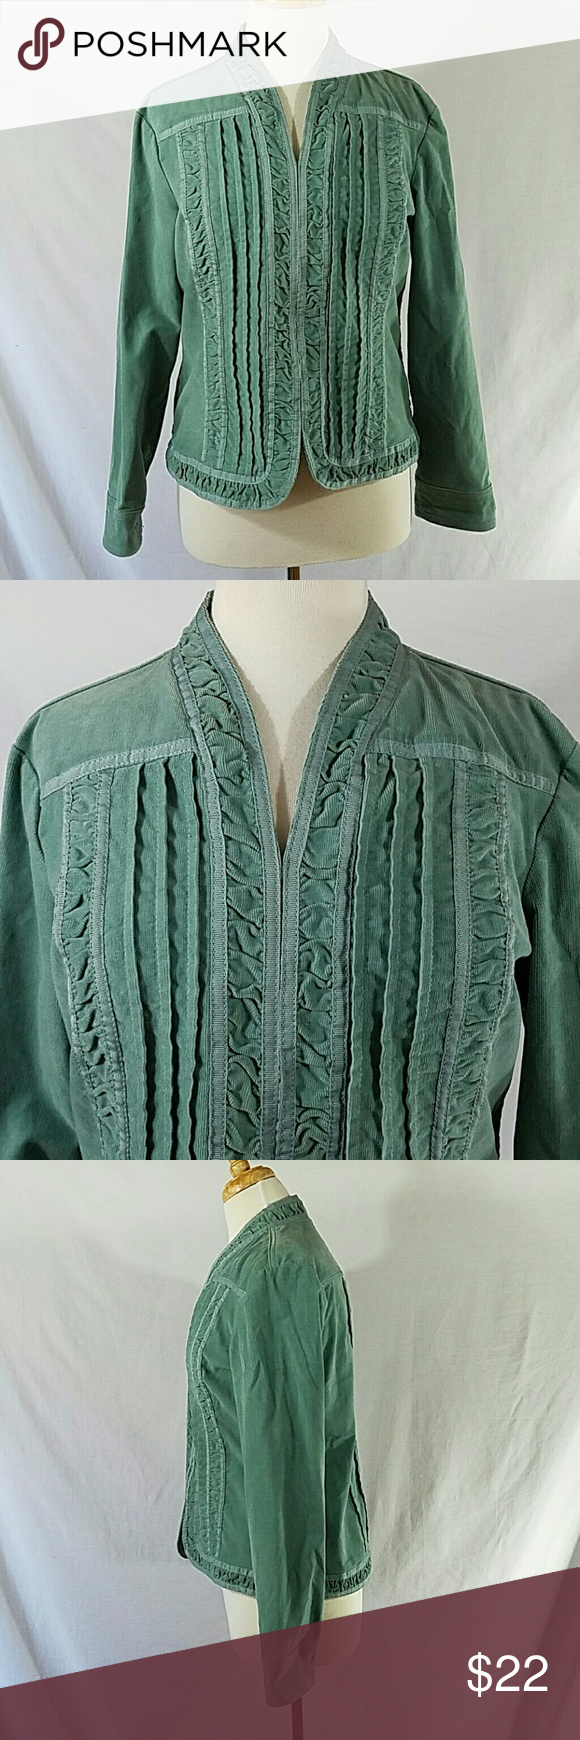 Chico's Corduroy Dusty Turquoise Jacket Size 1 (M) Dusty Turquoise Corduroy 6 hook & eye closures on front Bust is 40 inches Sleeve Length is 23 inches Length of jacket is 23 inches Body is 98% Cotton & 2% Spandex Trim is 100% Polyester Chico's Jackets & Coats